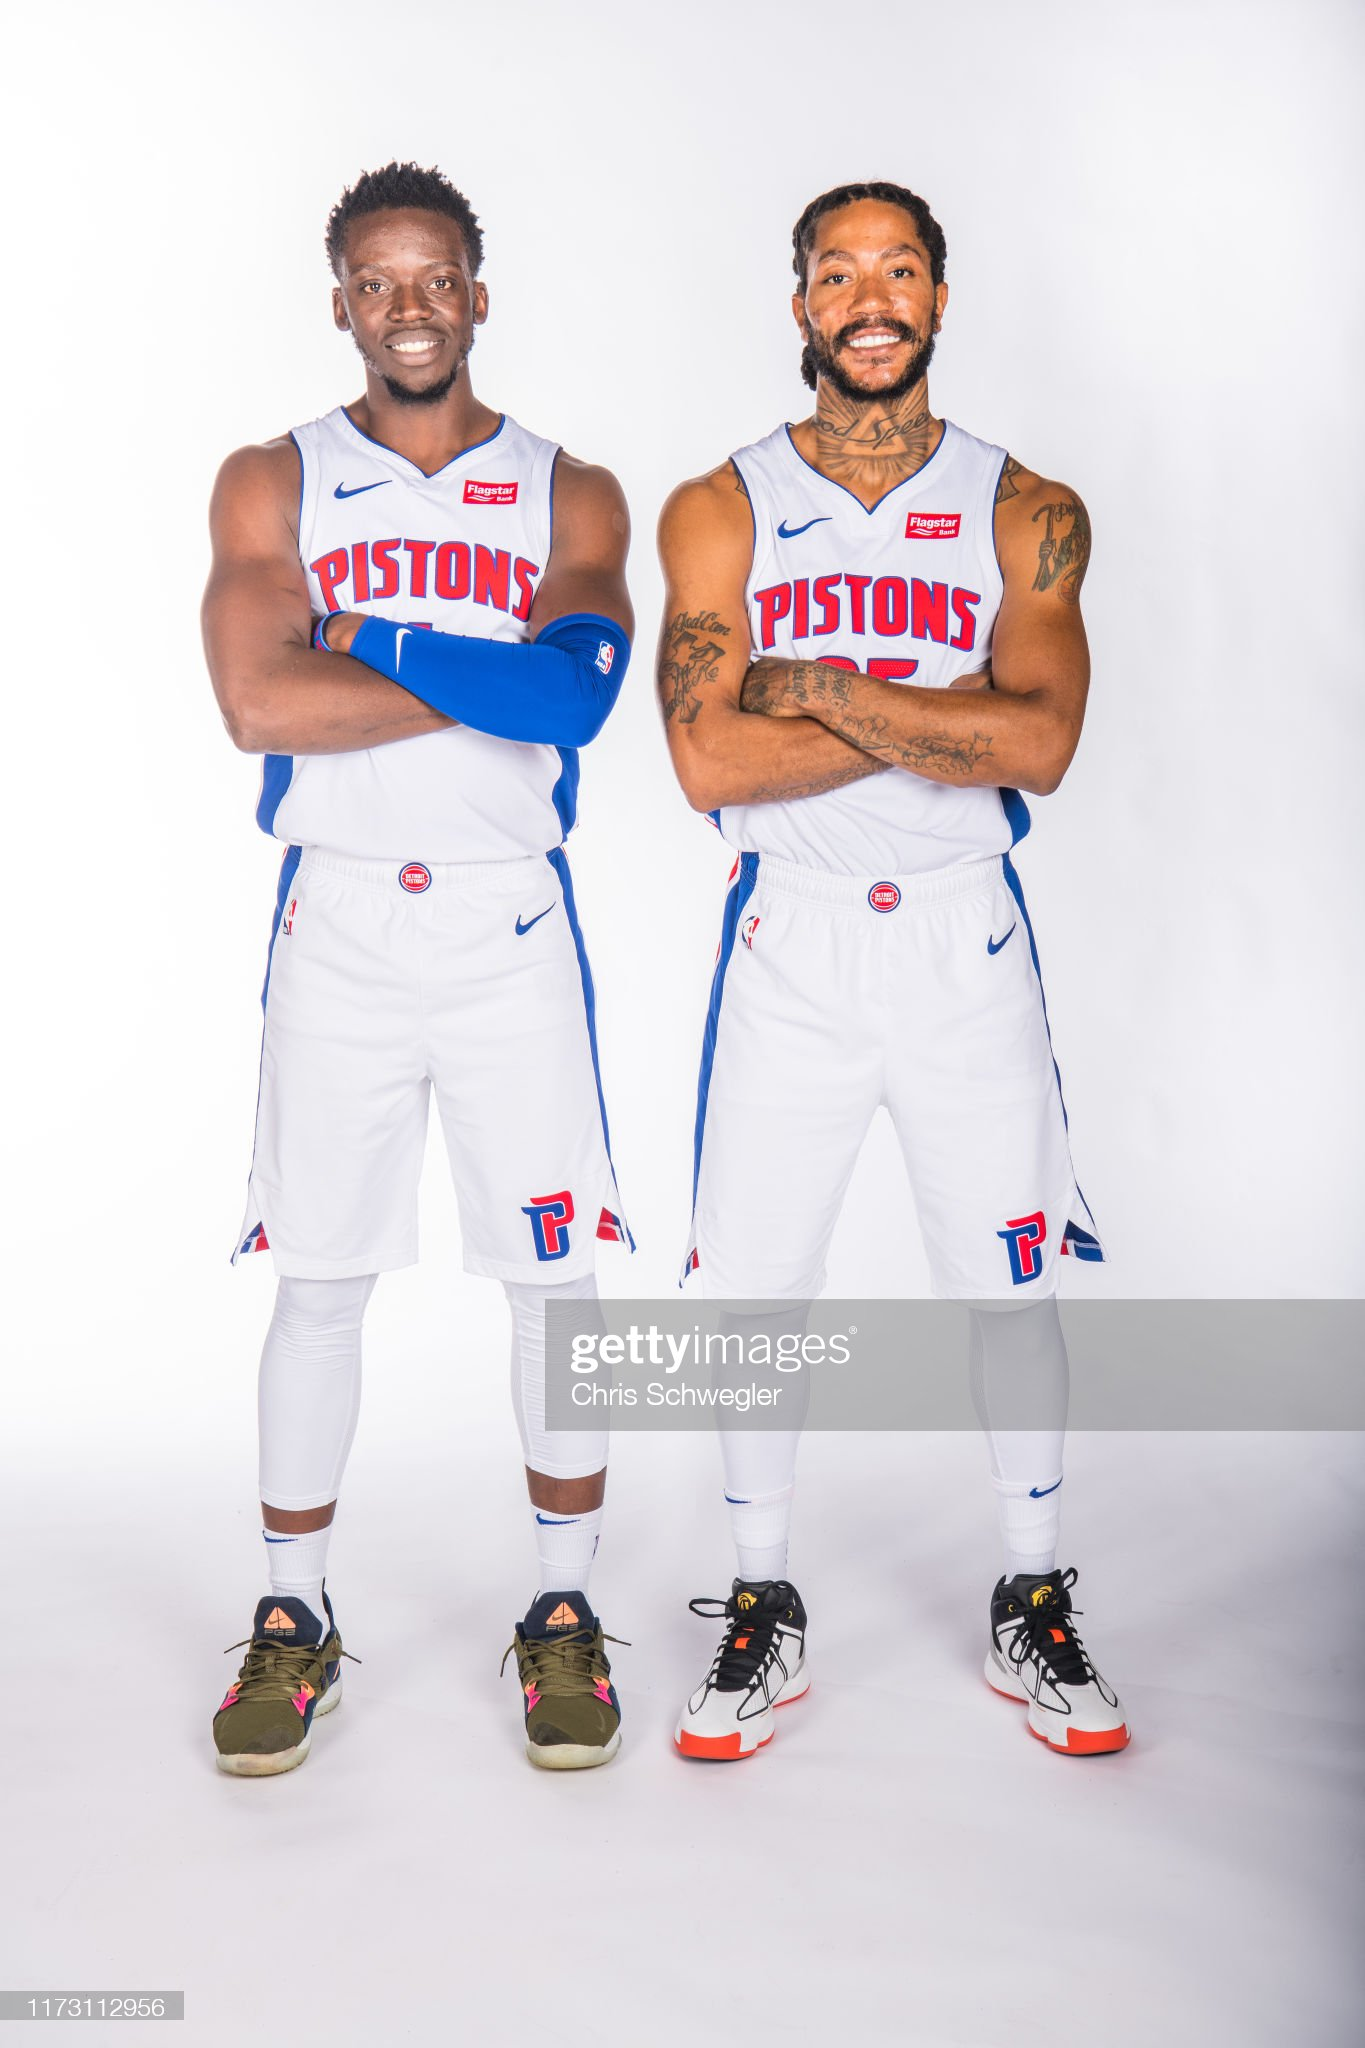 ¿Cuánto mide Derrick Rose? - Altura - Real height Reggie-jackson-and-derrick-rose-of-the-detroit-pistons-poses-for-a-picture-id1173112956?s=2048x2048